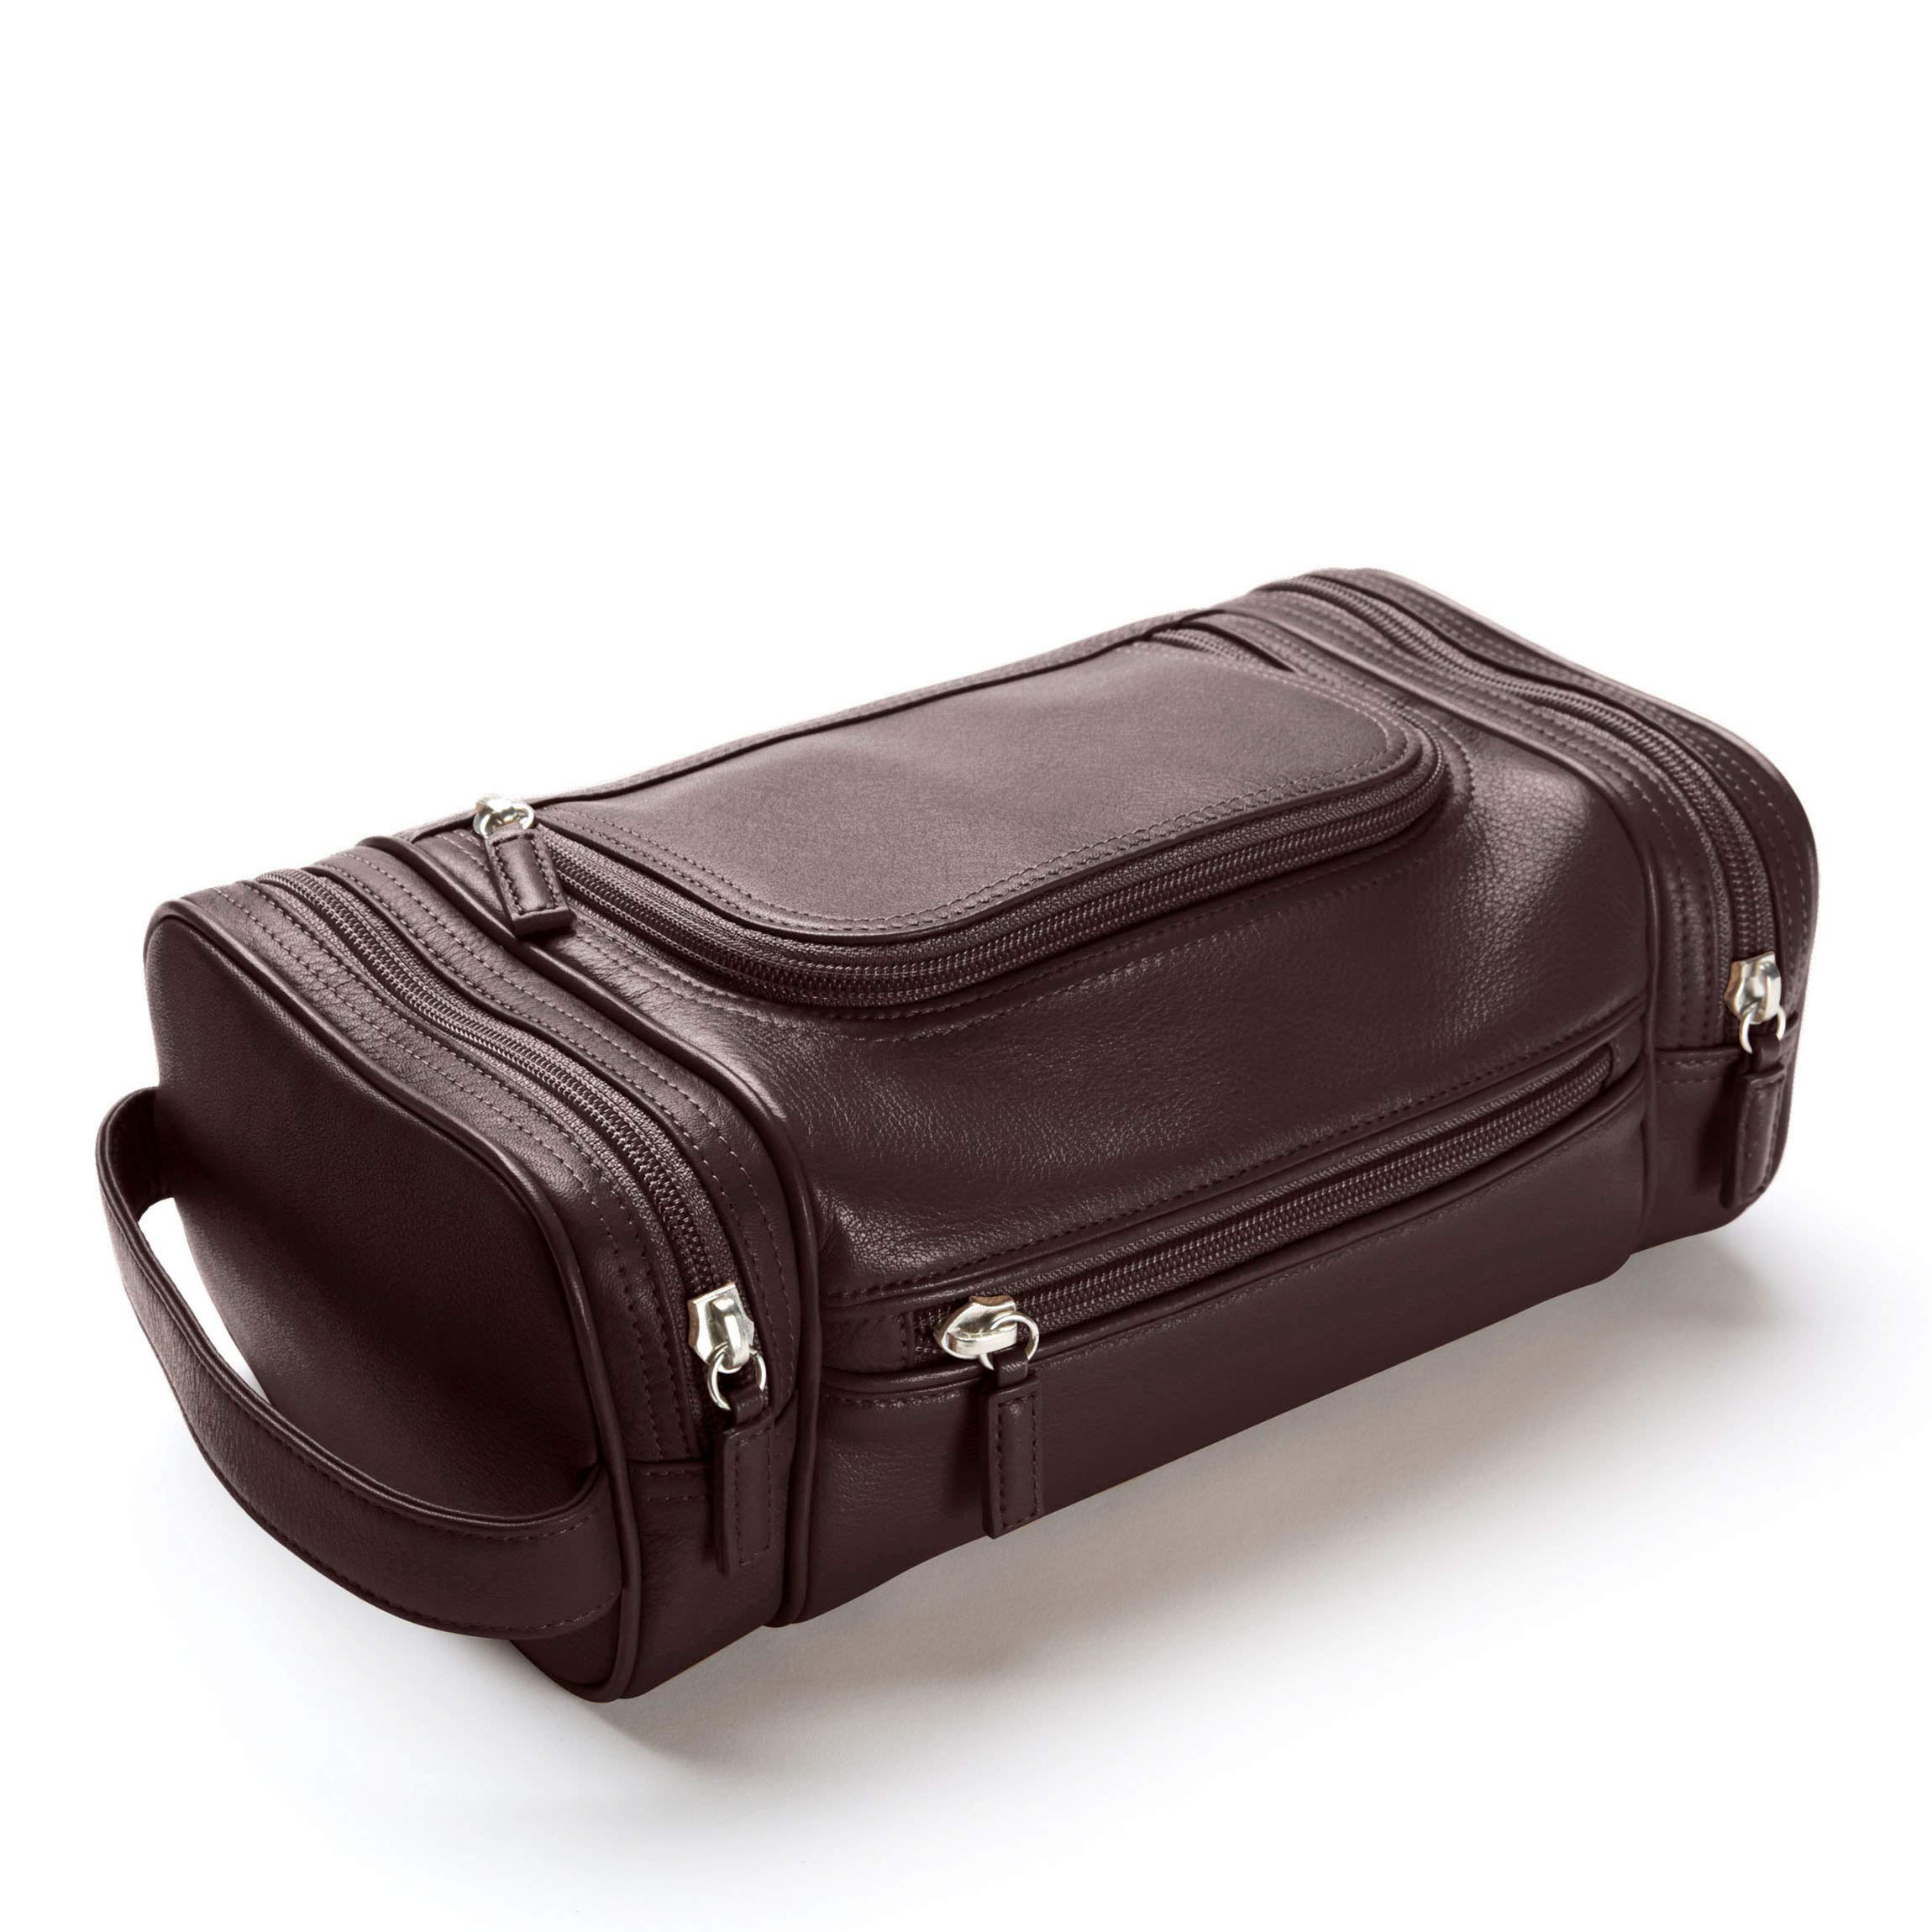 Multi Pocket Toiletry Bag - Full Grain Leather Leather - Brown (Brown)